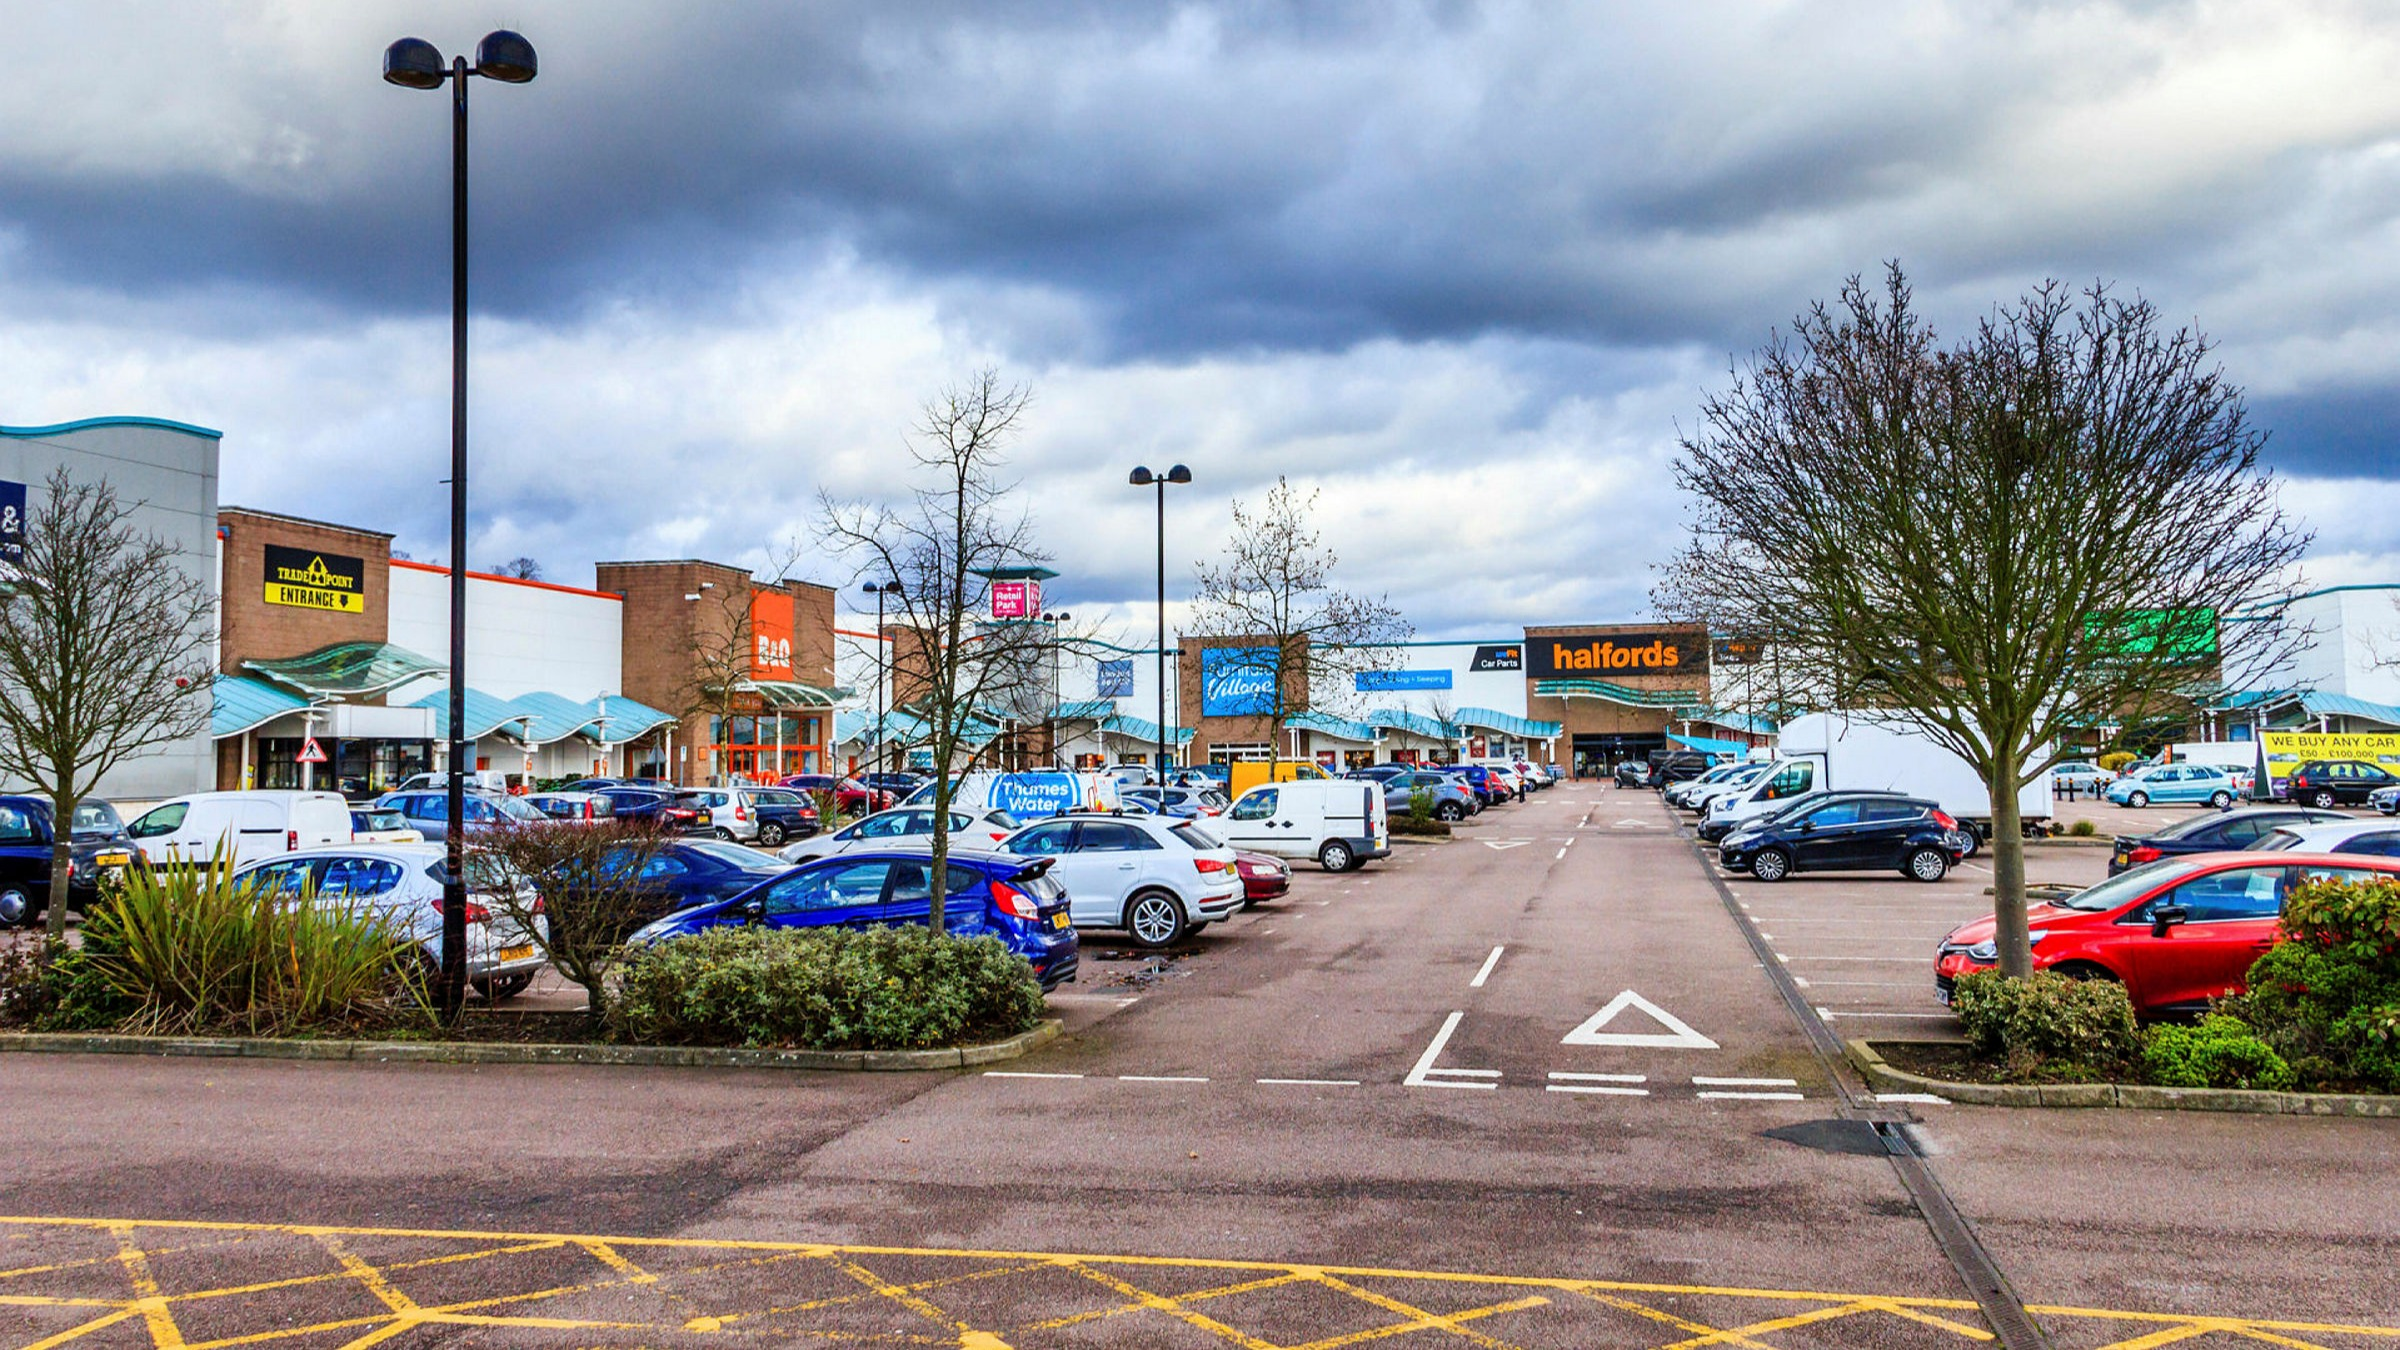 ft.com - Daniel Thomas and Jonathan Eley - How Covid is driving an unlikely renaissance of the British retail park